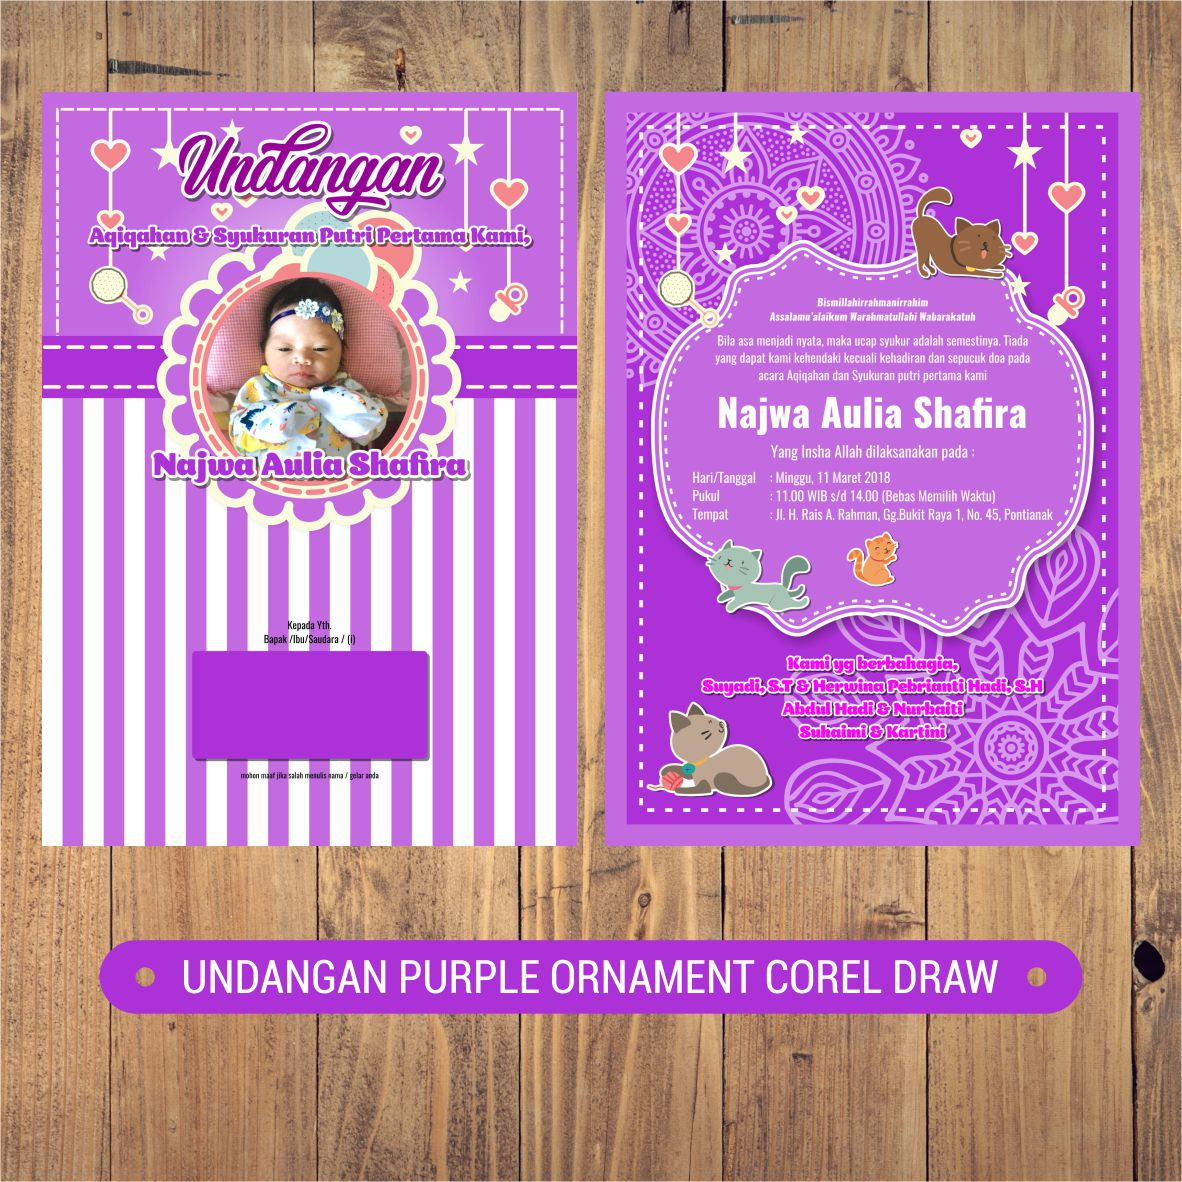 Indonesia Corel Draw Undangan Aqiqah Purple Ornament Corel Draw